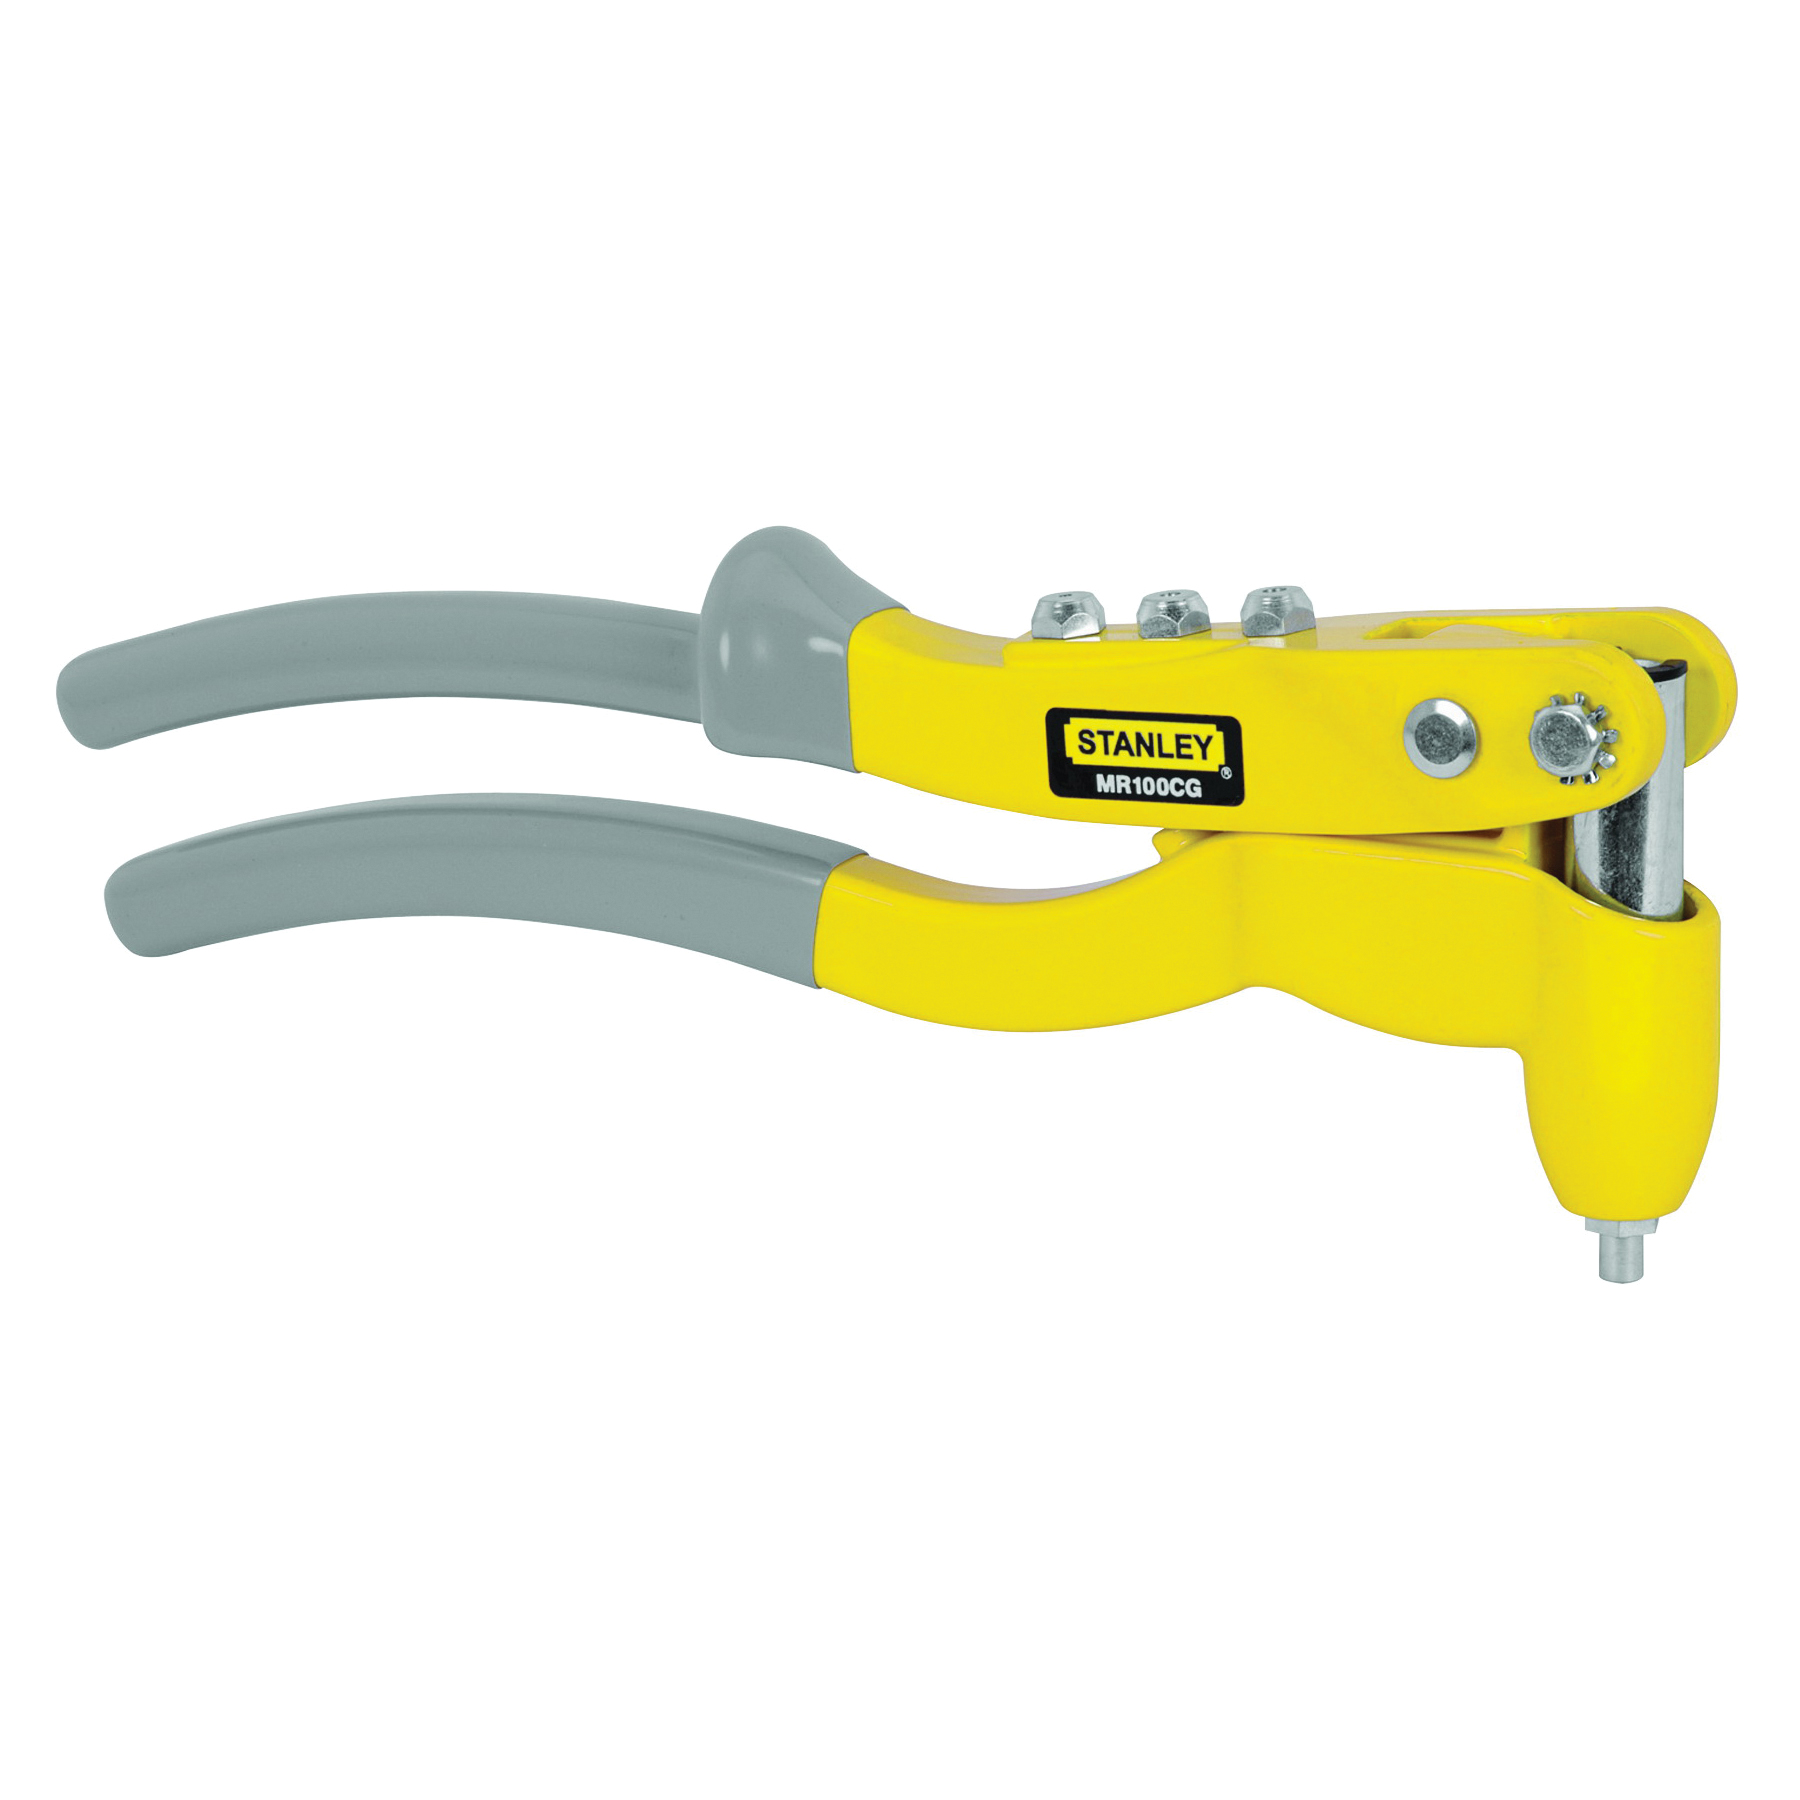 Picture of STANLEY MR100CG Riveter, 11-1/8 in L, Metal